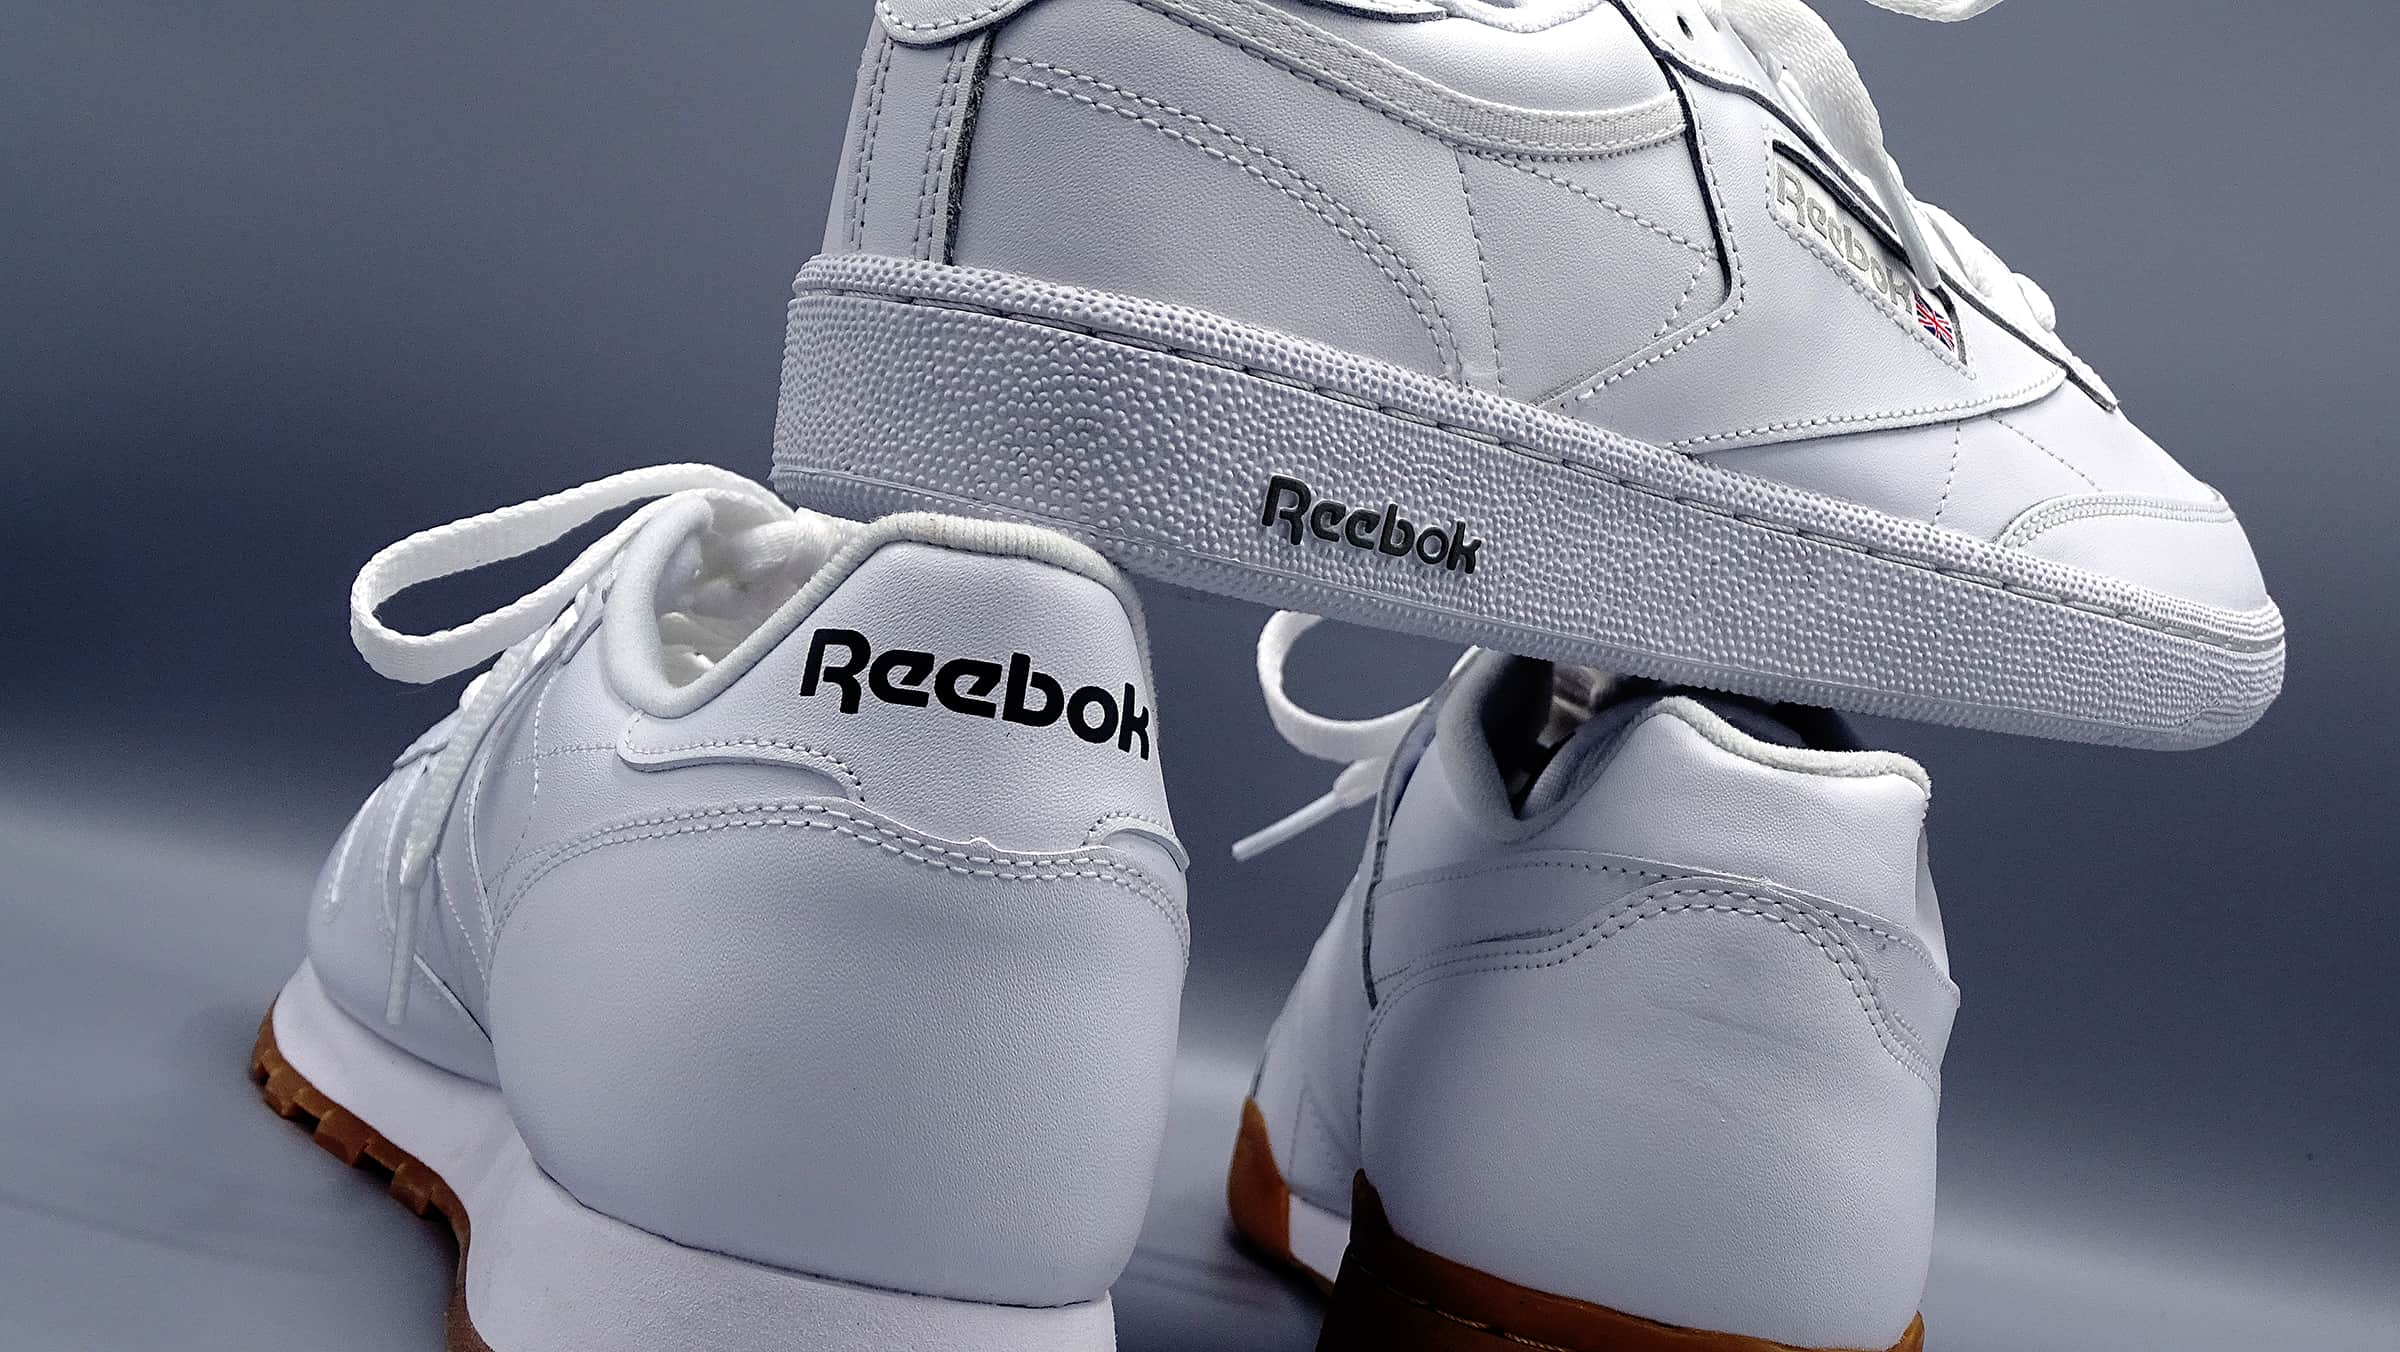 men's white reebok sneakers stacked